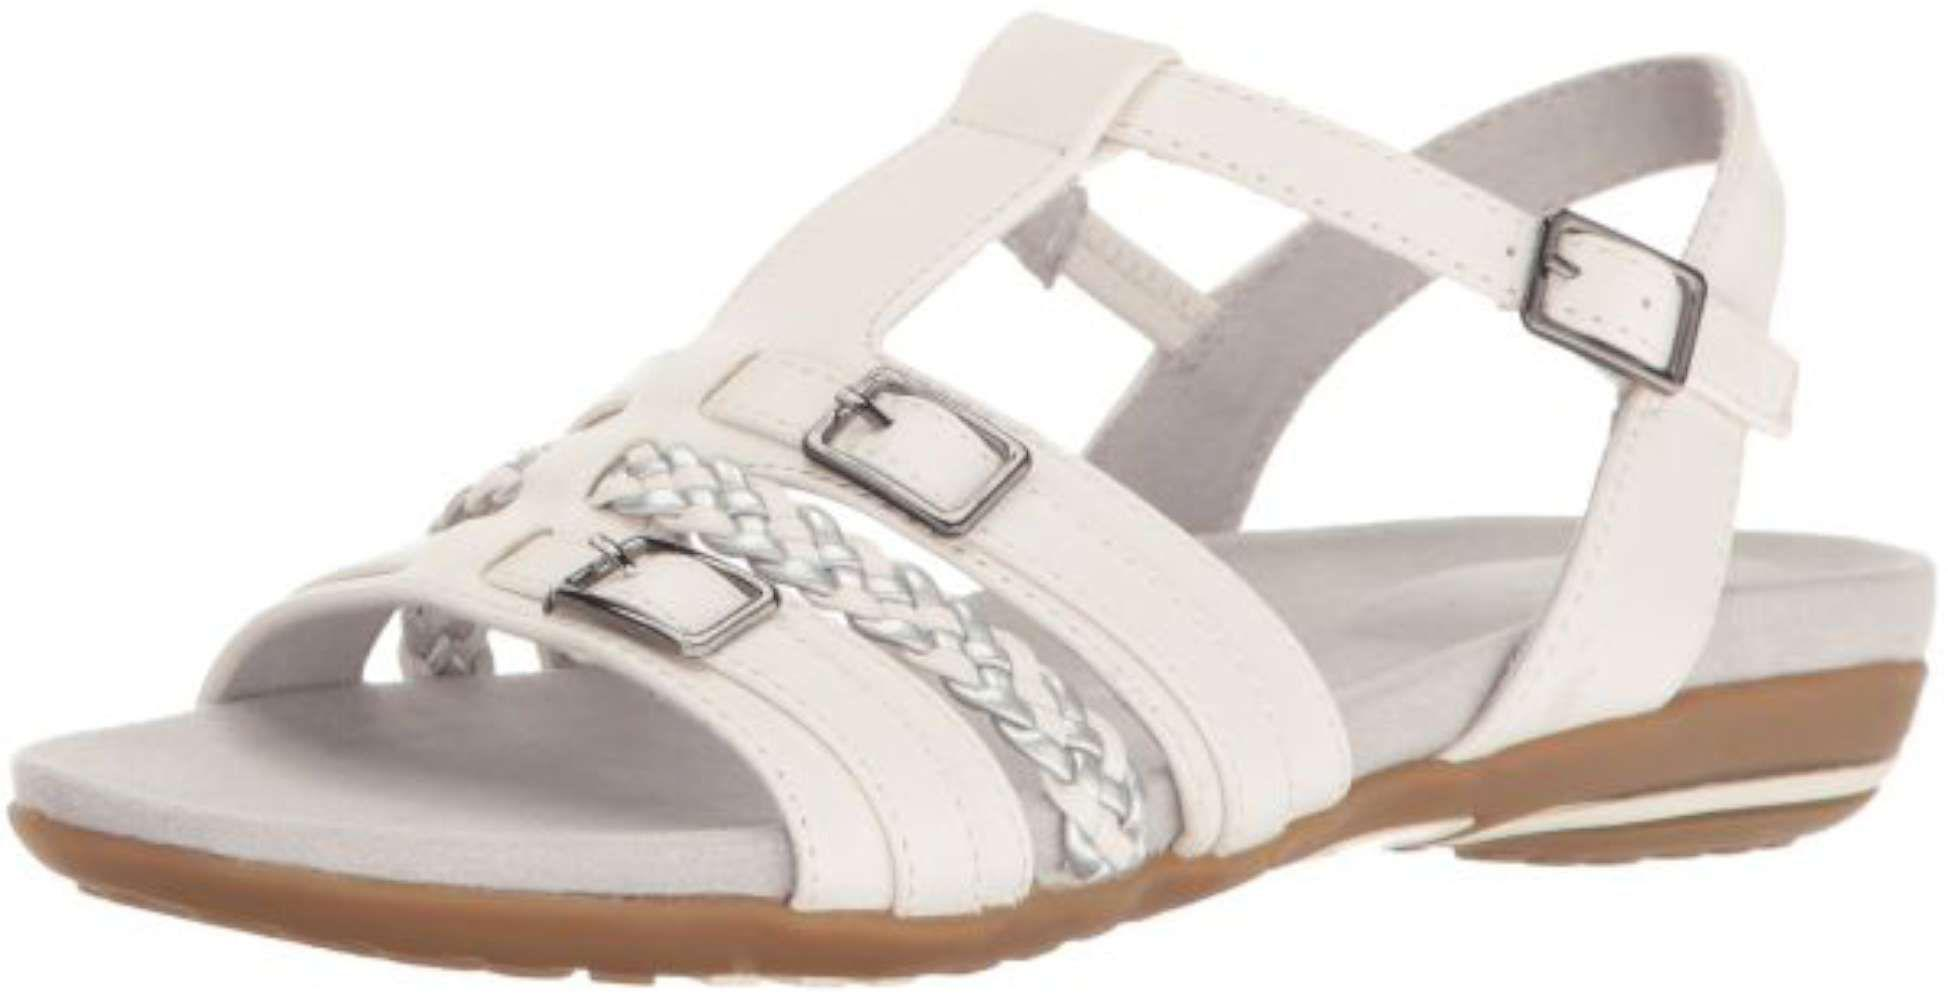 fb3e60d622c8 Easy Street - White Womens Parker Open Toe Casual Ankle Strap Sandals -  Lyst. View fullscreen